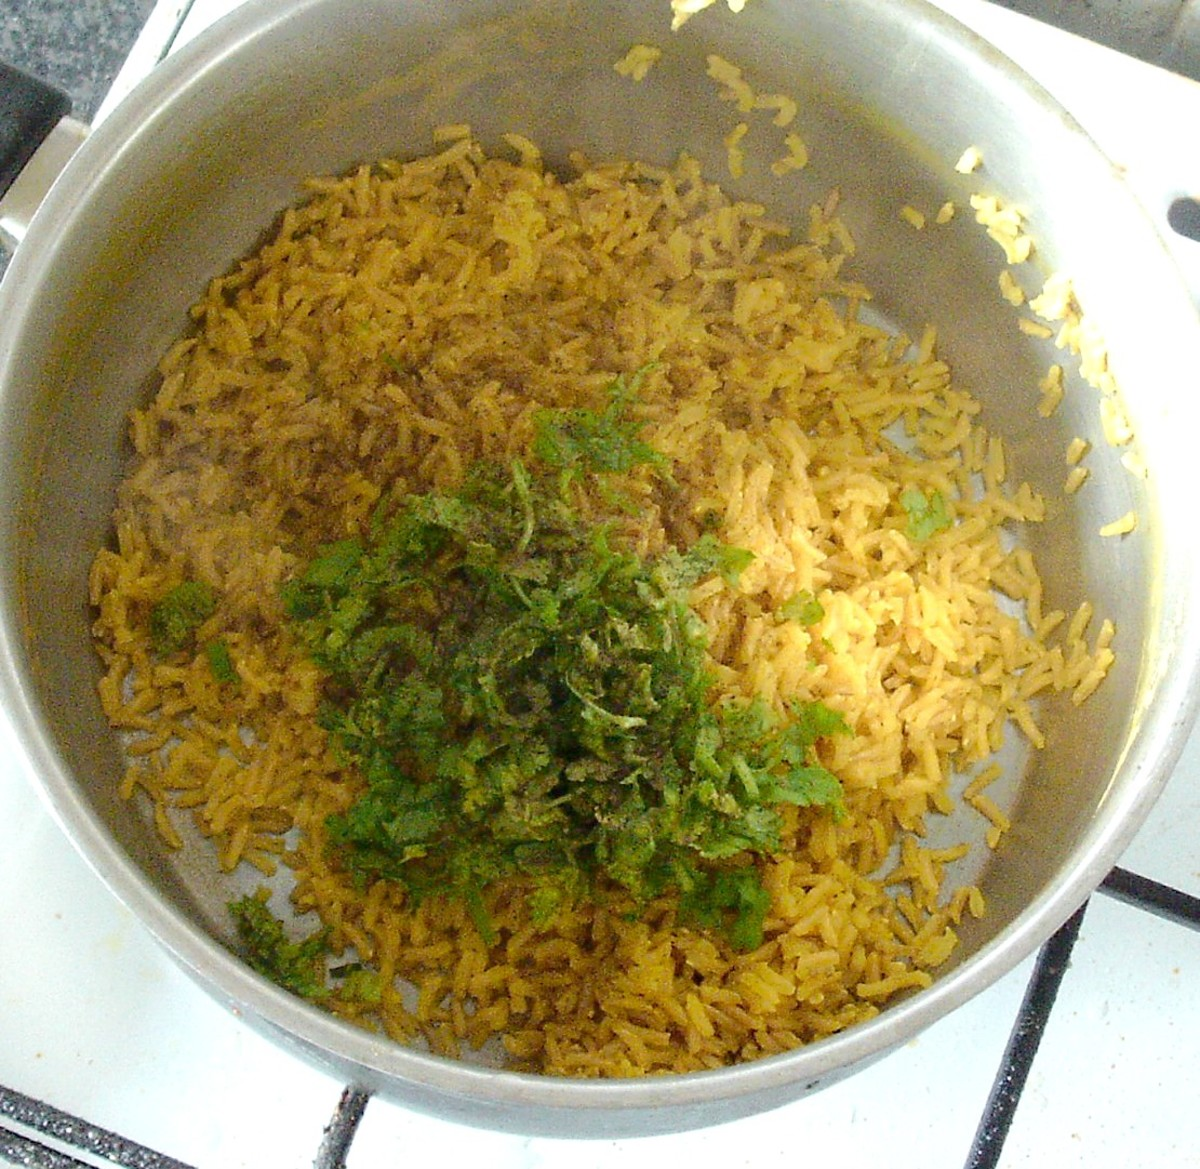 Coriander (cilantro) and black pepper are added to turmeric brown rice